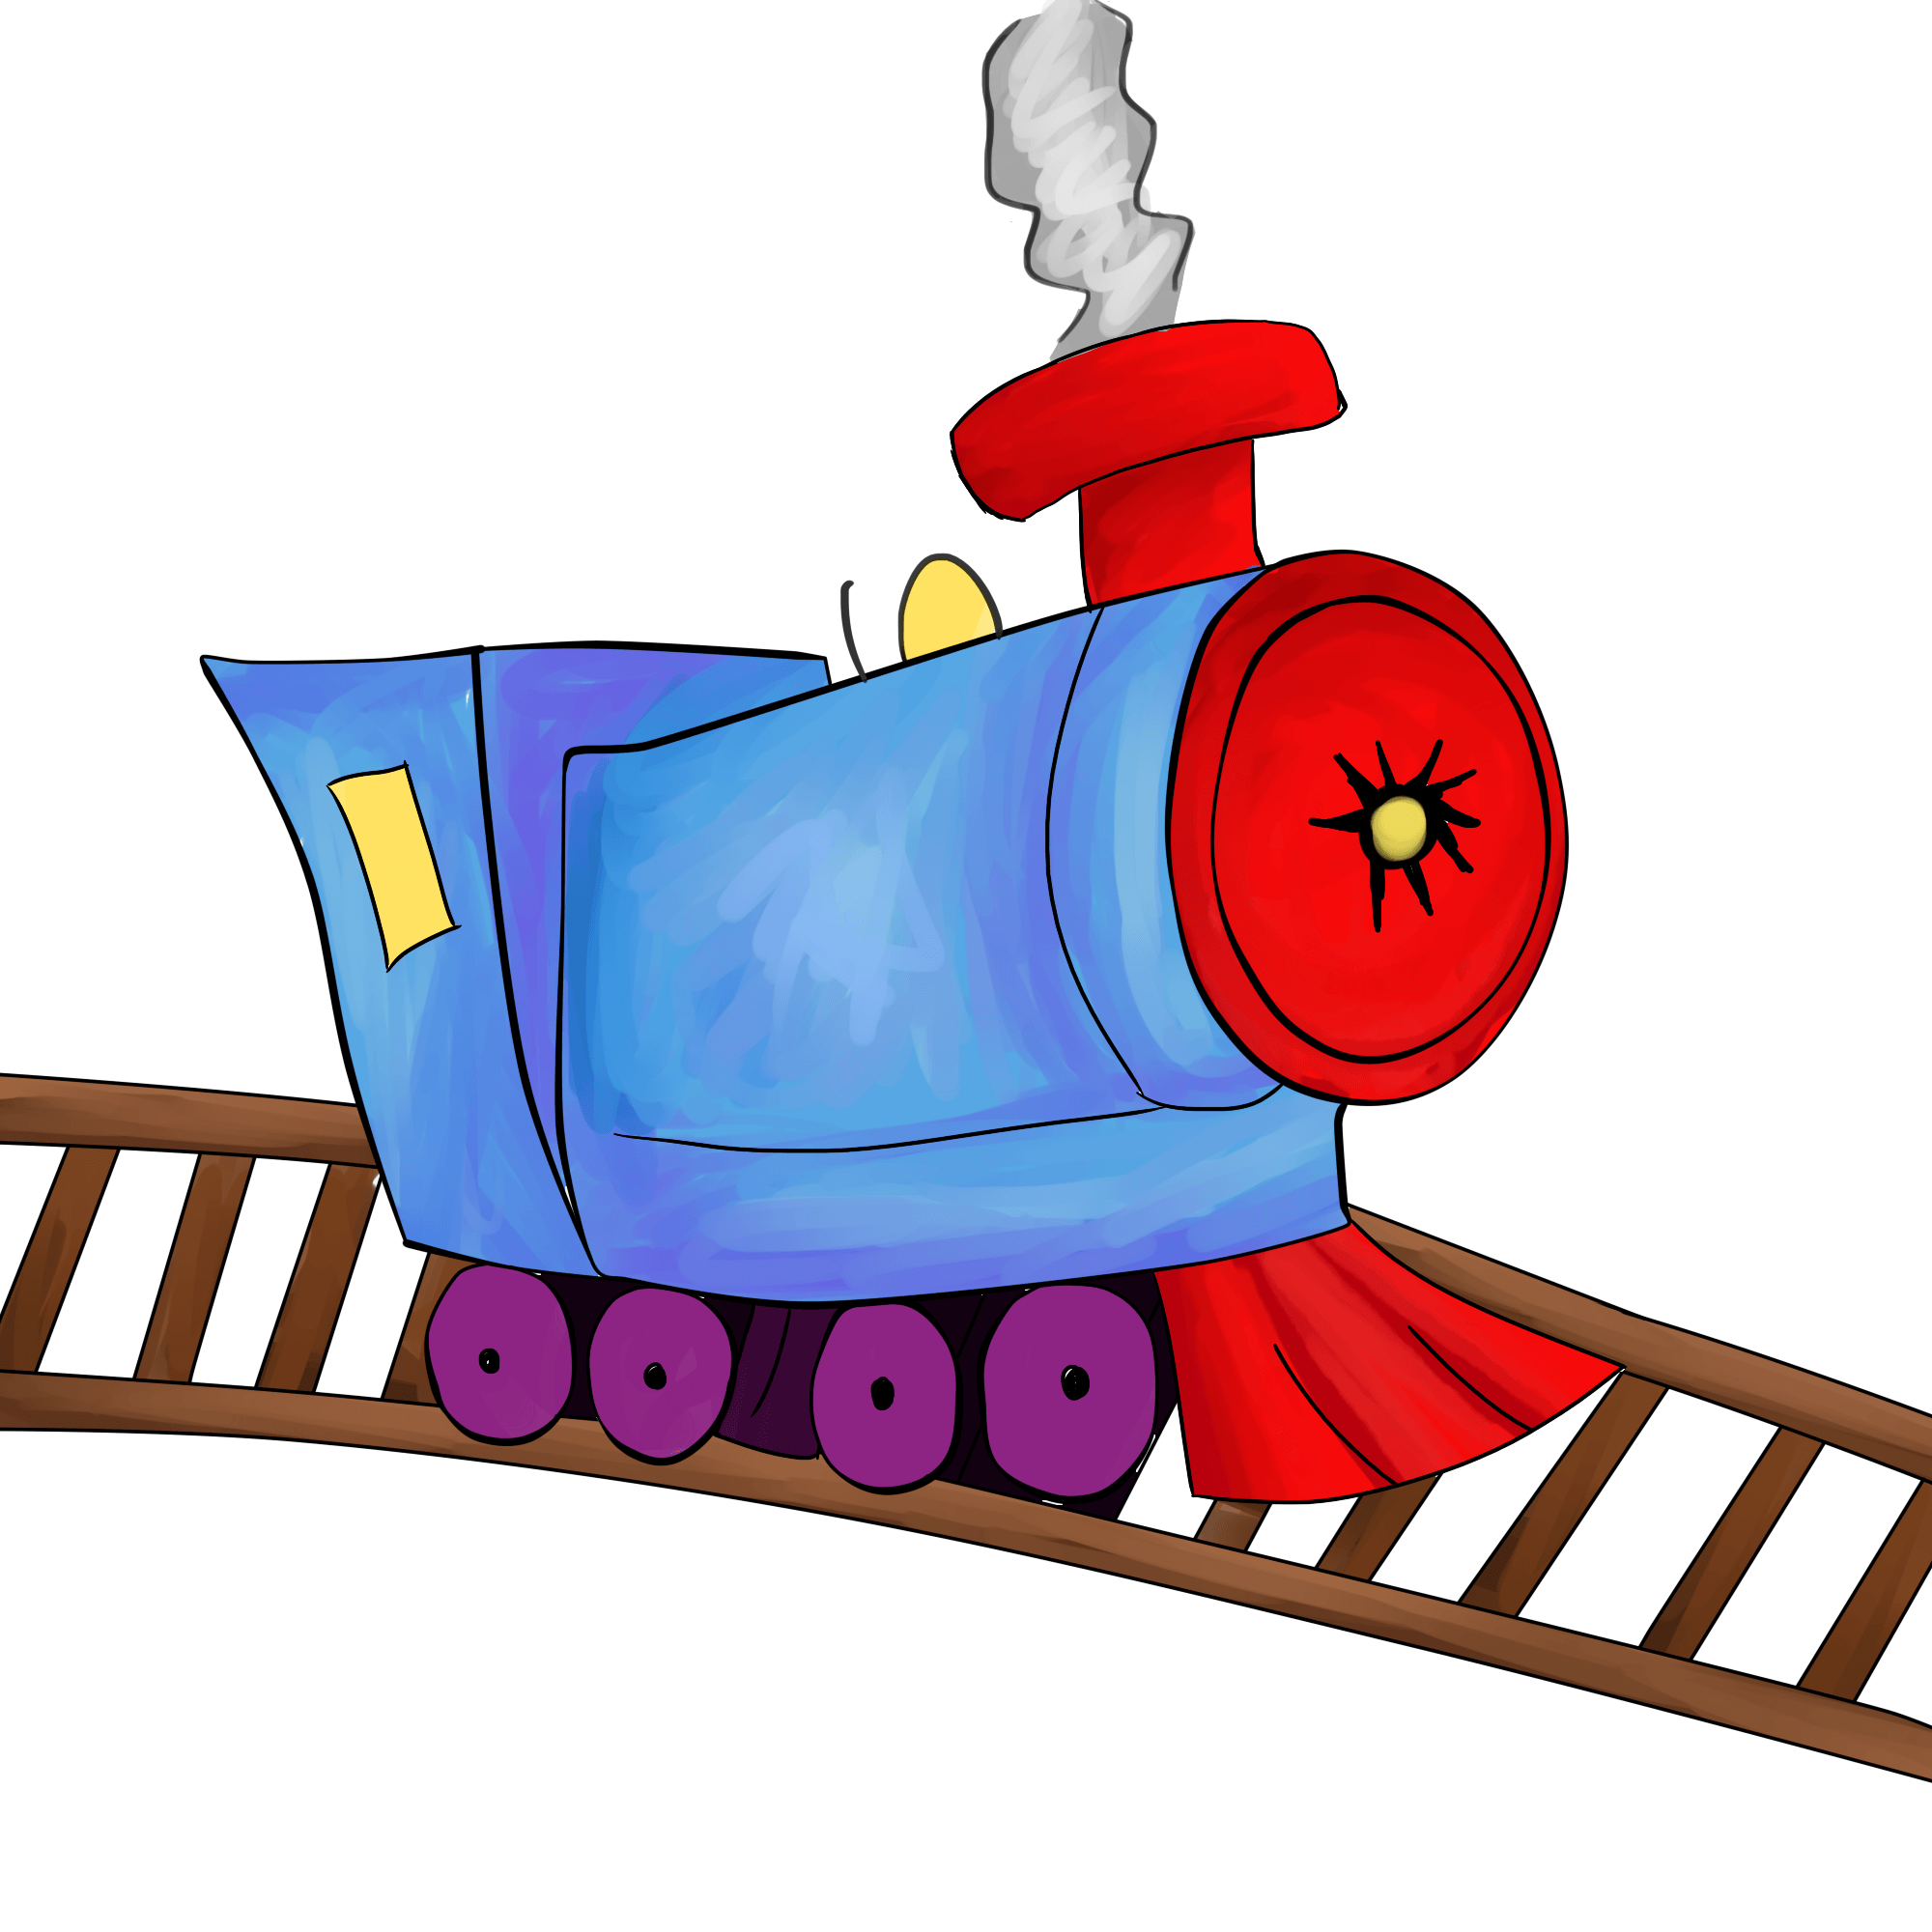 clip freeuse download Railway rail free on. Station clipart train schedule